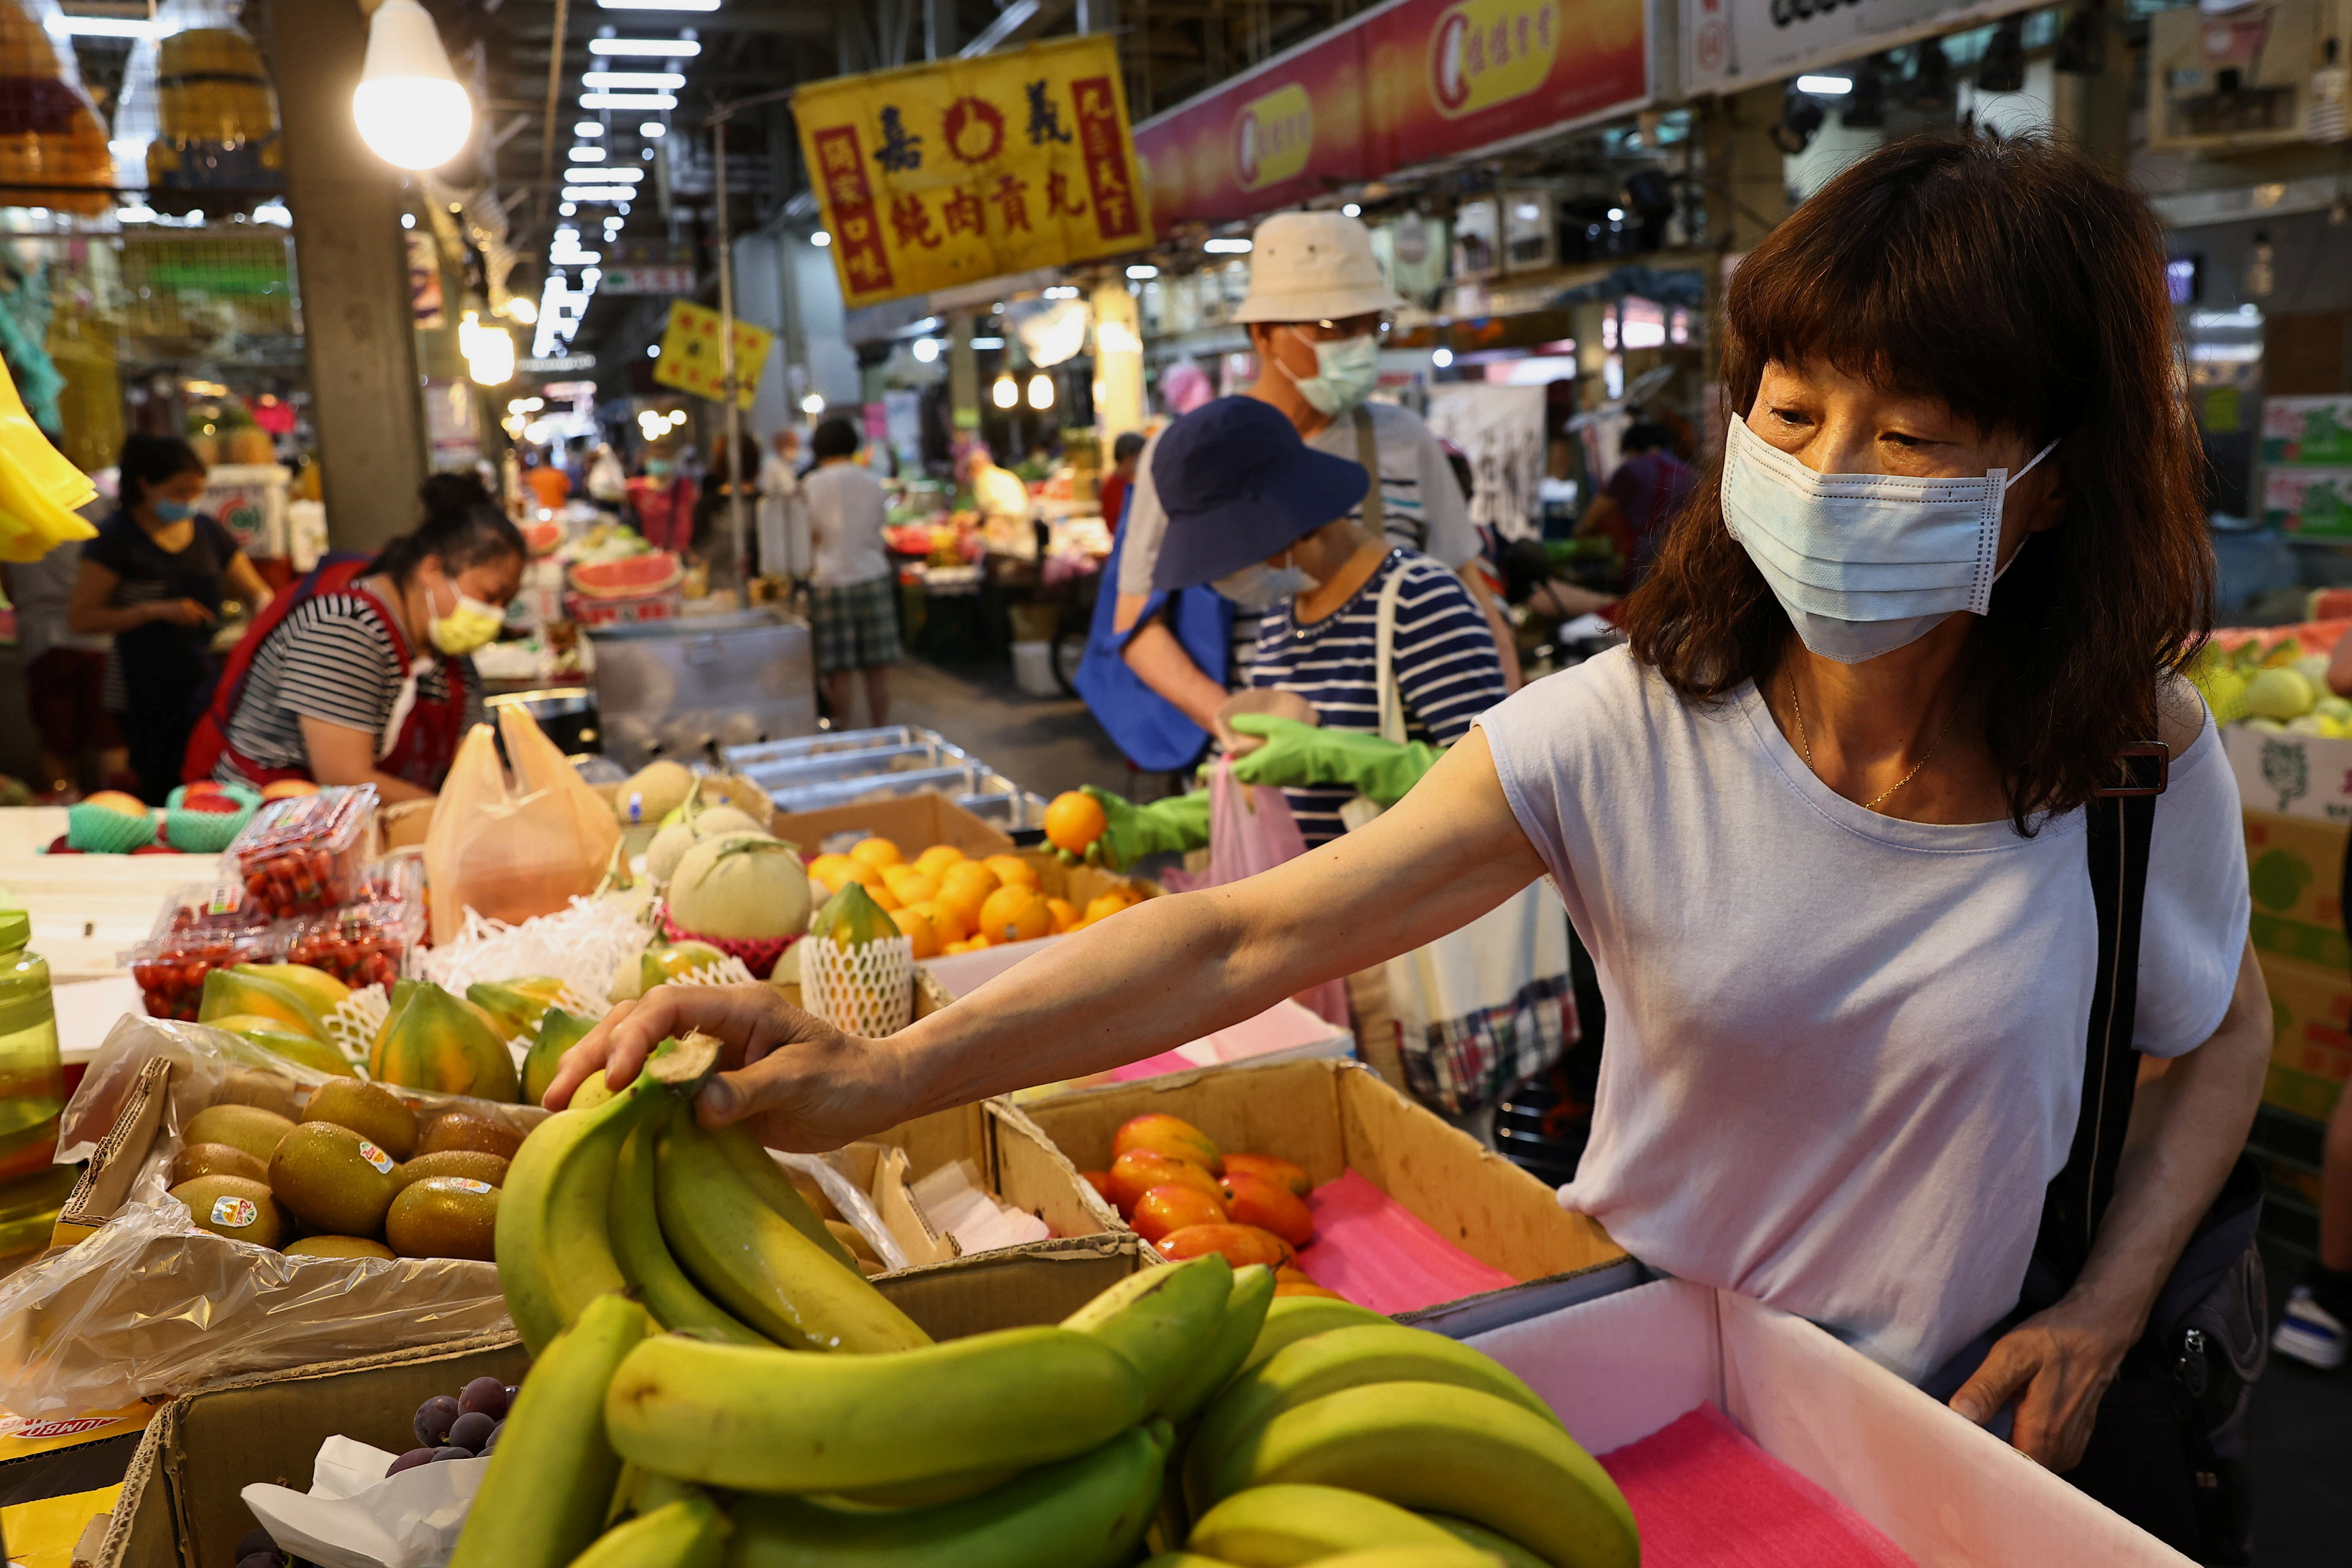 A woman wears a protective face mask while shopping for fruits at a market, amid a surge in coronavirus disease (COVID-19) infections in Taipei, Taiwan May 18, 2021. REUTERS/Ann Wang